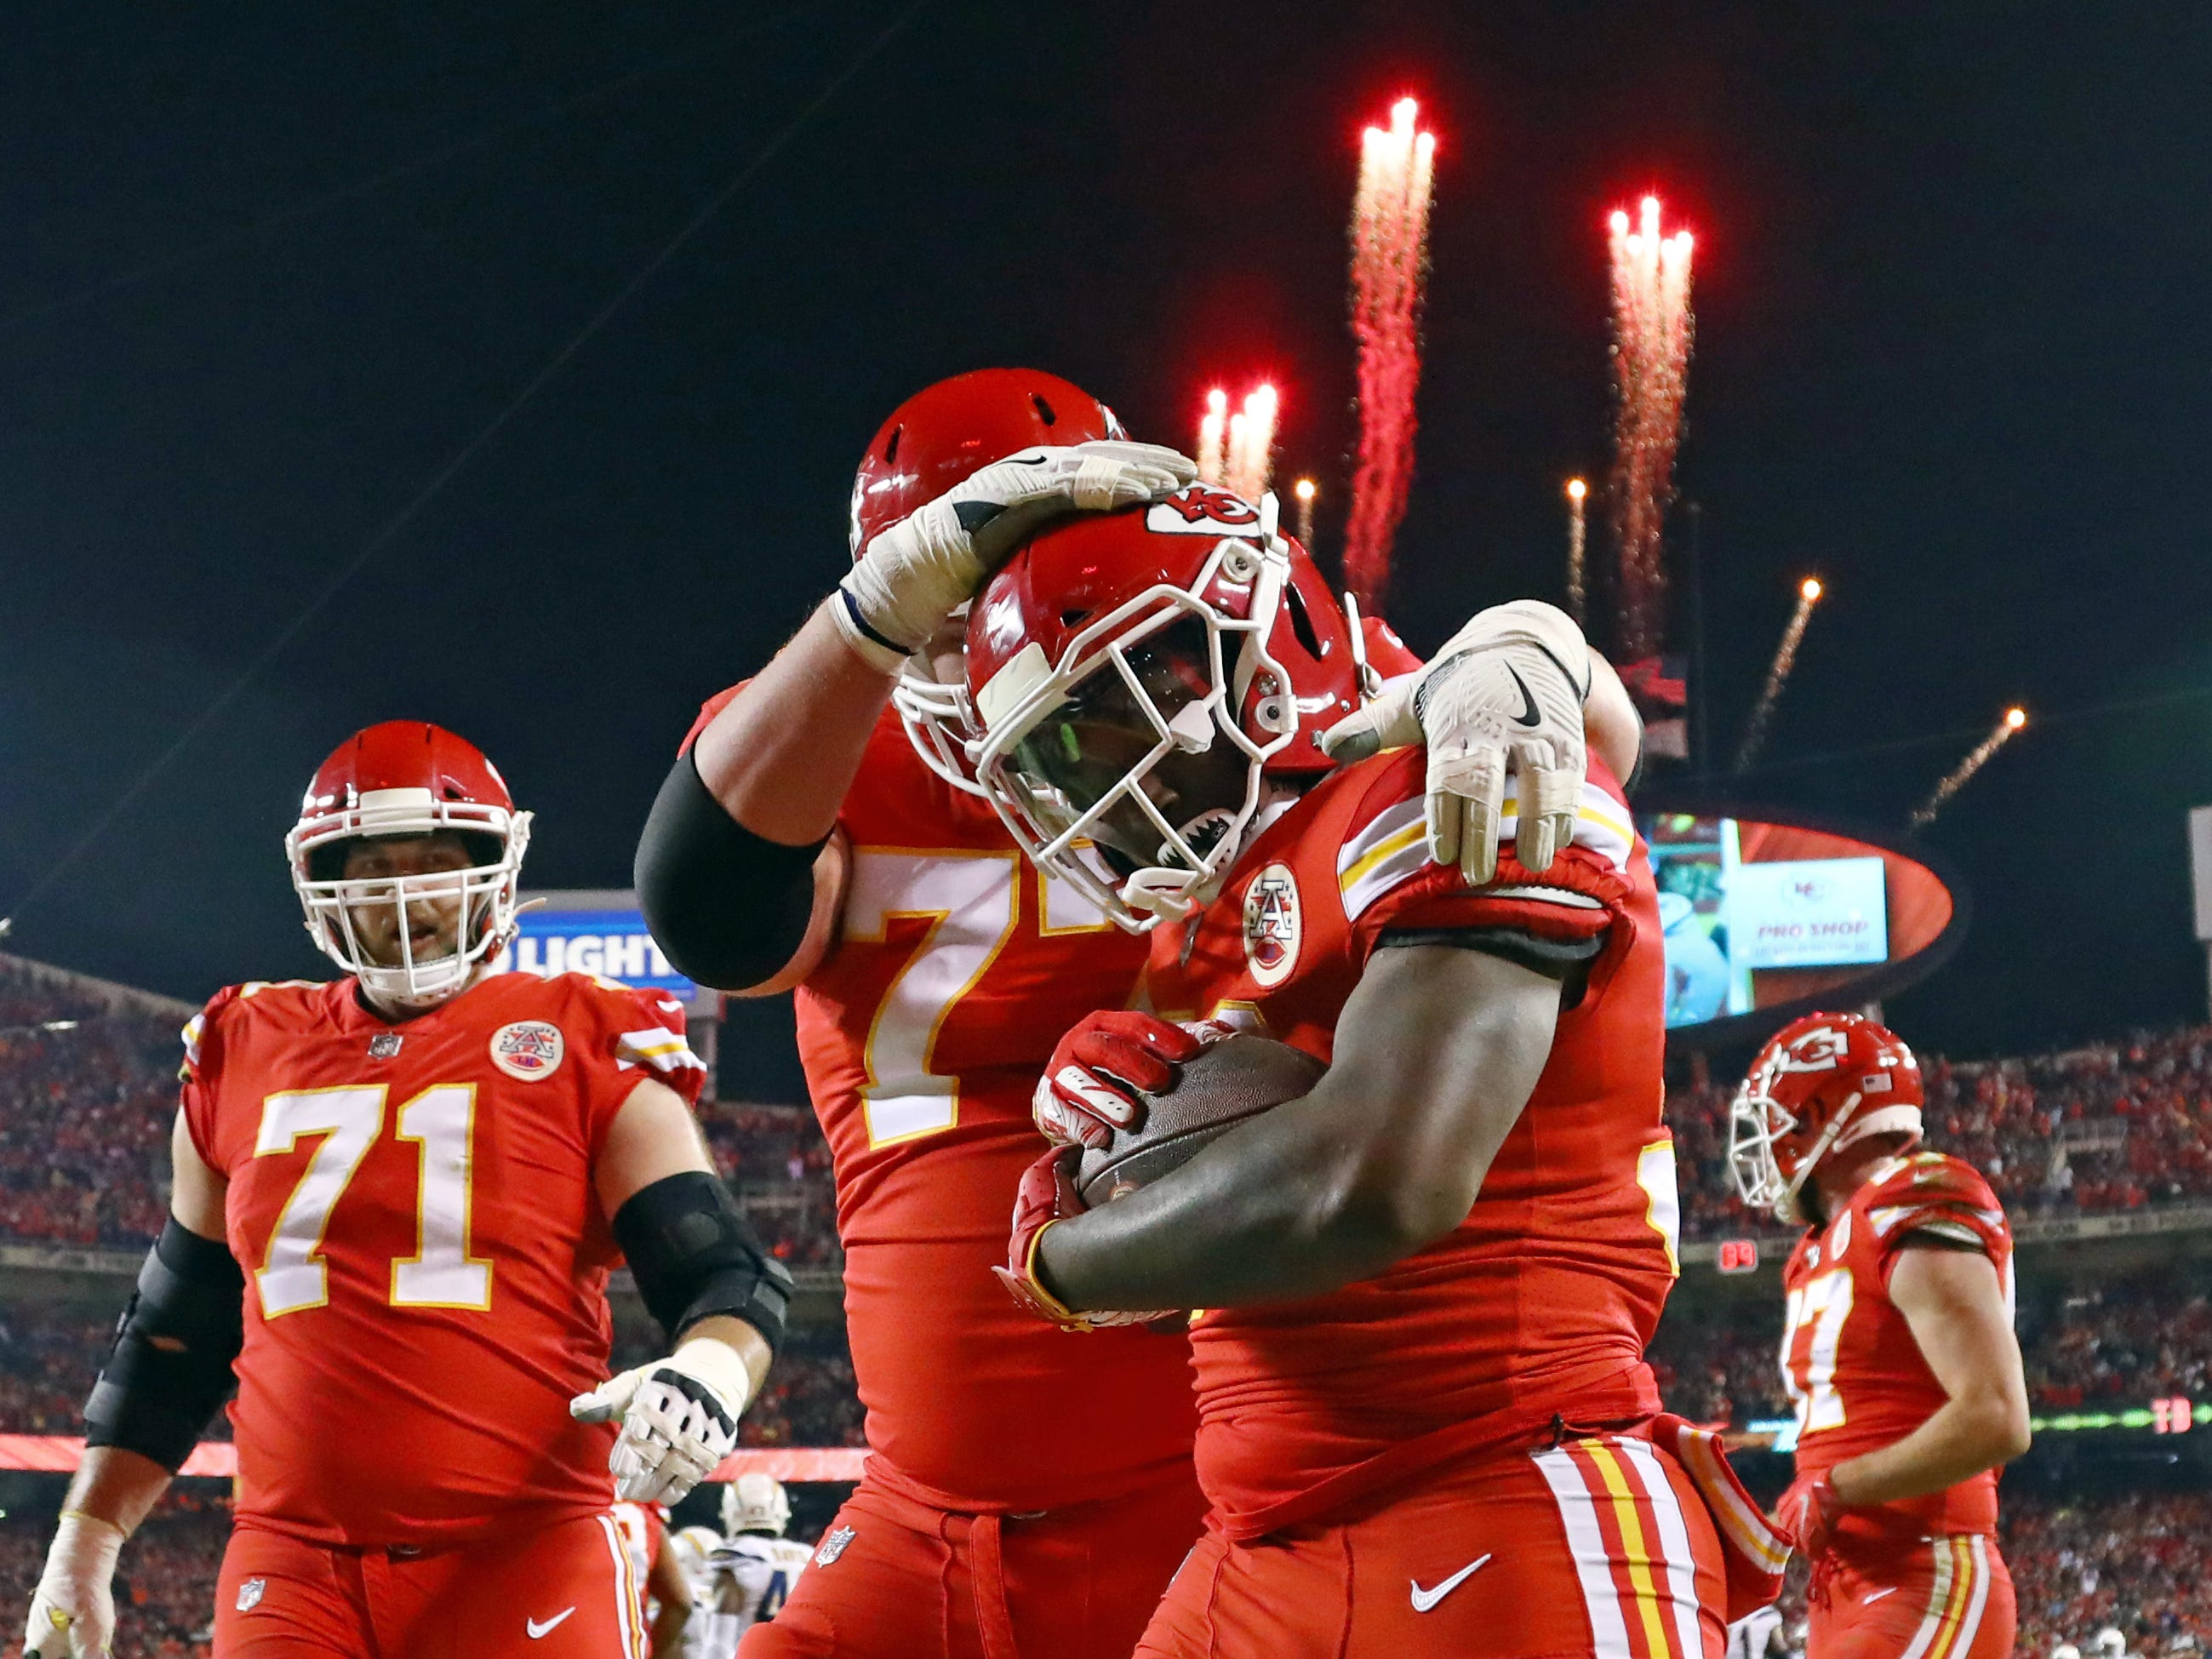 Kansas City Chiefs running back Darrel Williams is congratulated by offensive tackle Andrew Wylie (77) after scoring a touchdown against the Los Angeles Chargers in the first half at Arrowhead Stadium.